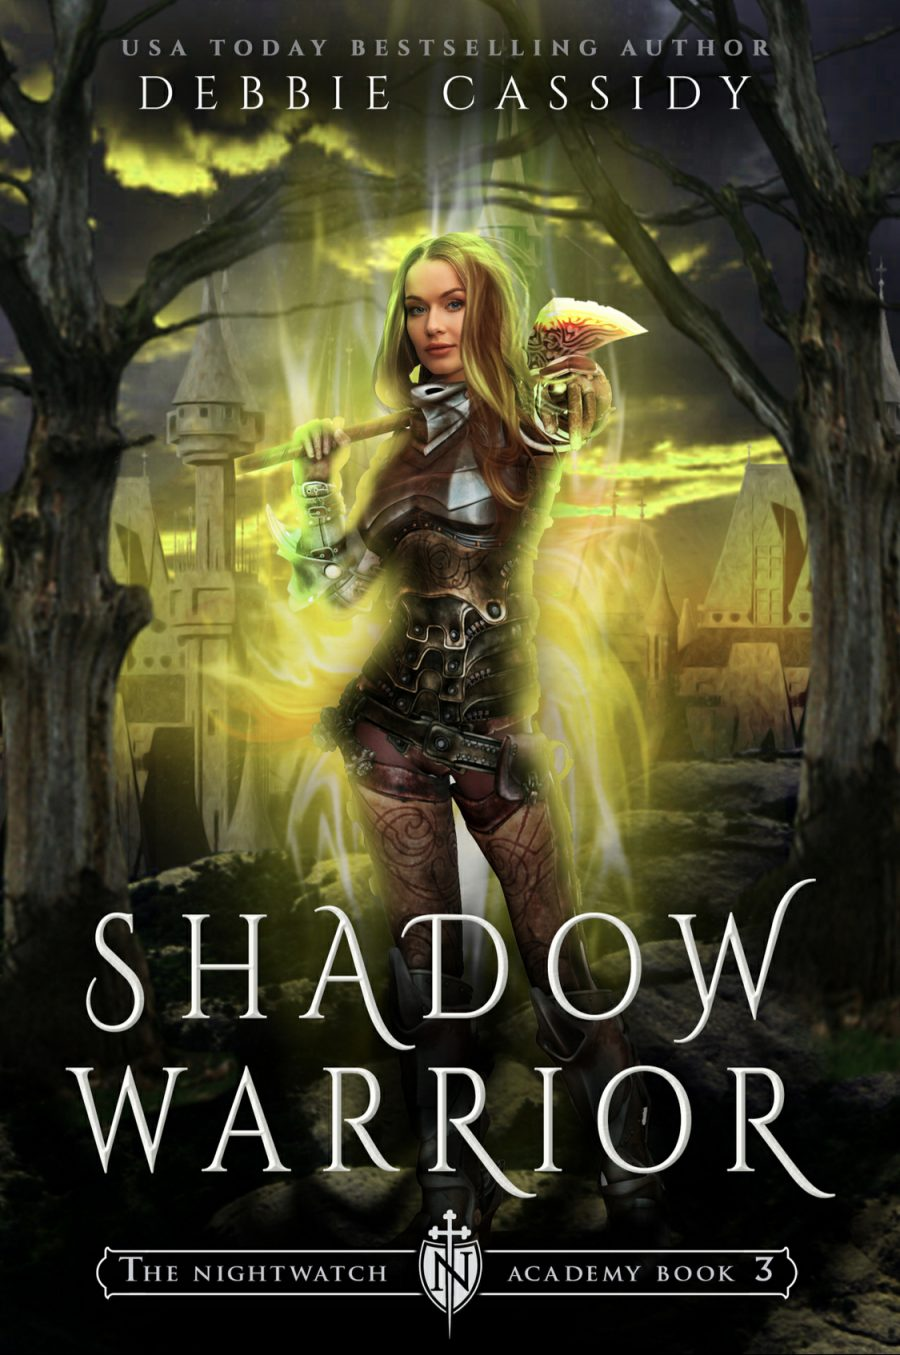 Shadow Warrior (The Nightwatch Academy - Book 3) by Debbie Cassidy - A Book Review #BookReview #ReverseHarem #RH #WhyChoose #UF #UrbanFantasy #WouldRecommend #ARC #KindleUnlimited #KU